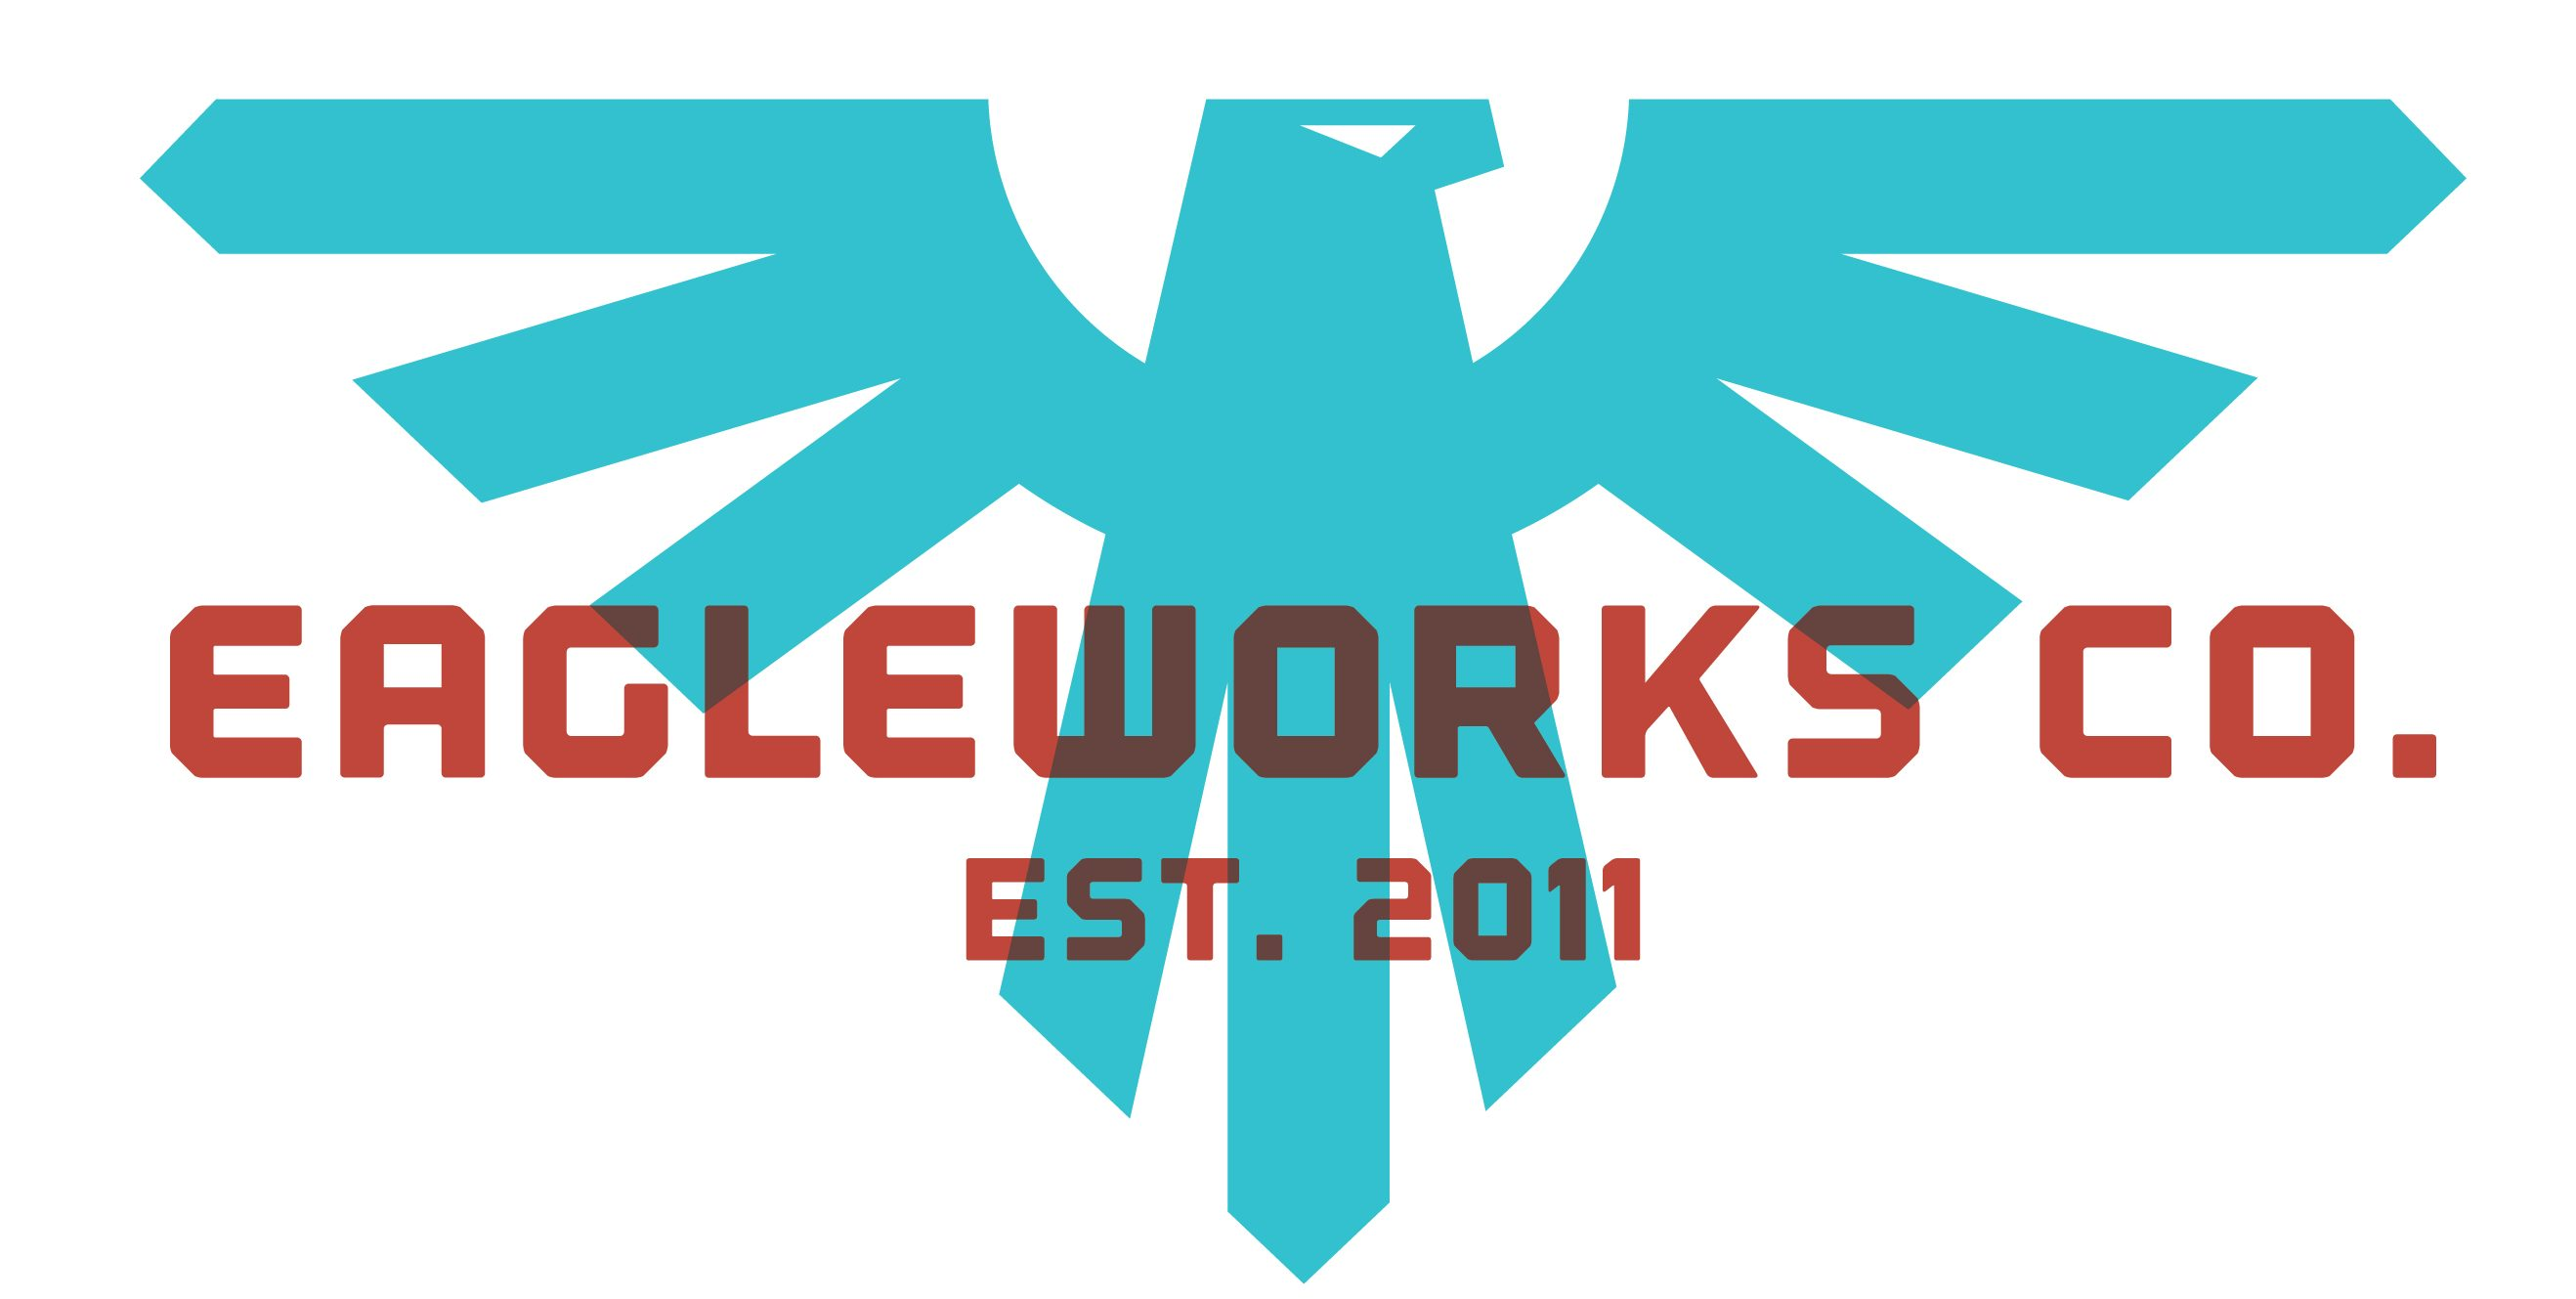 EagleWorks Co